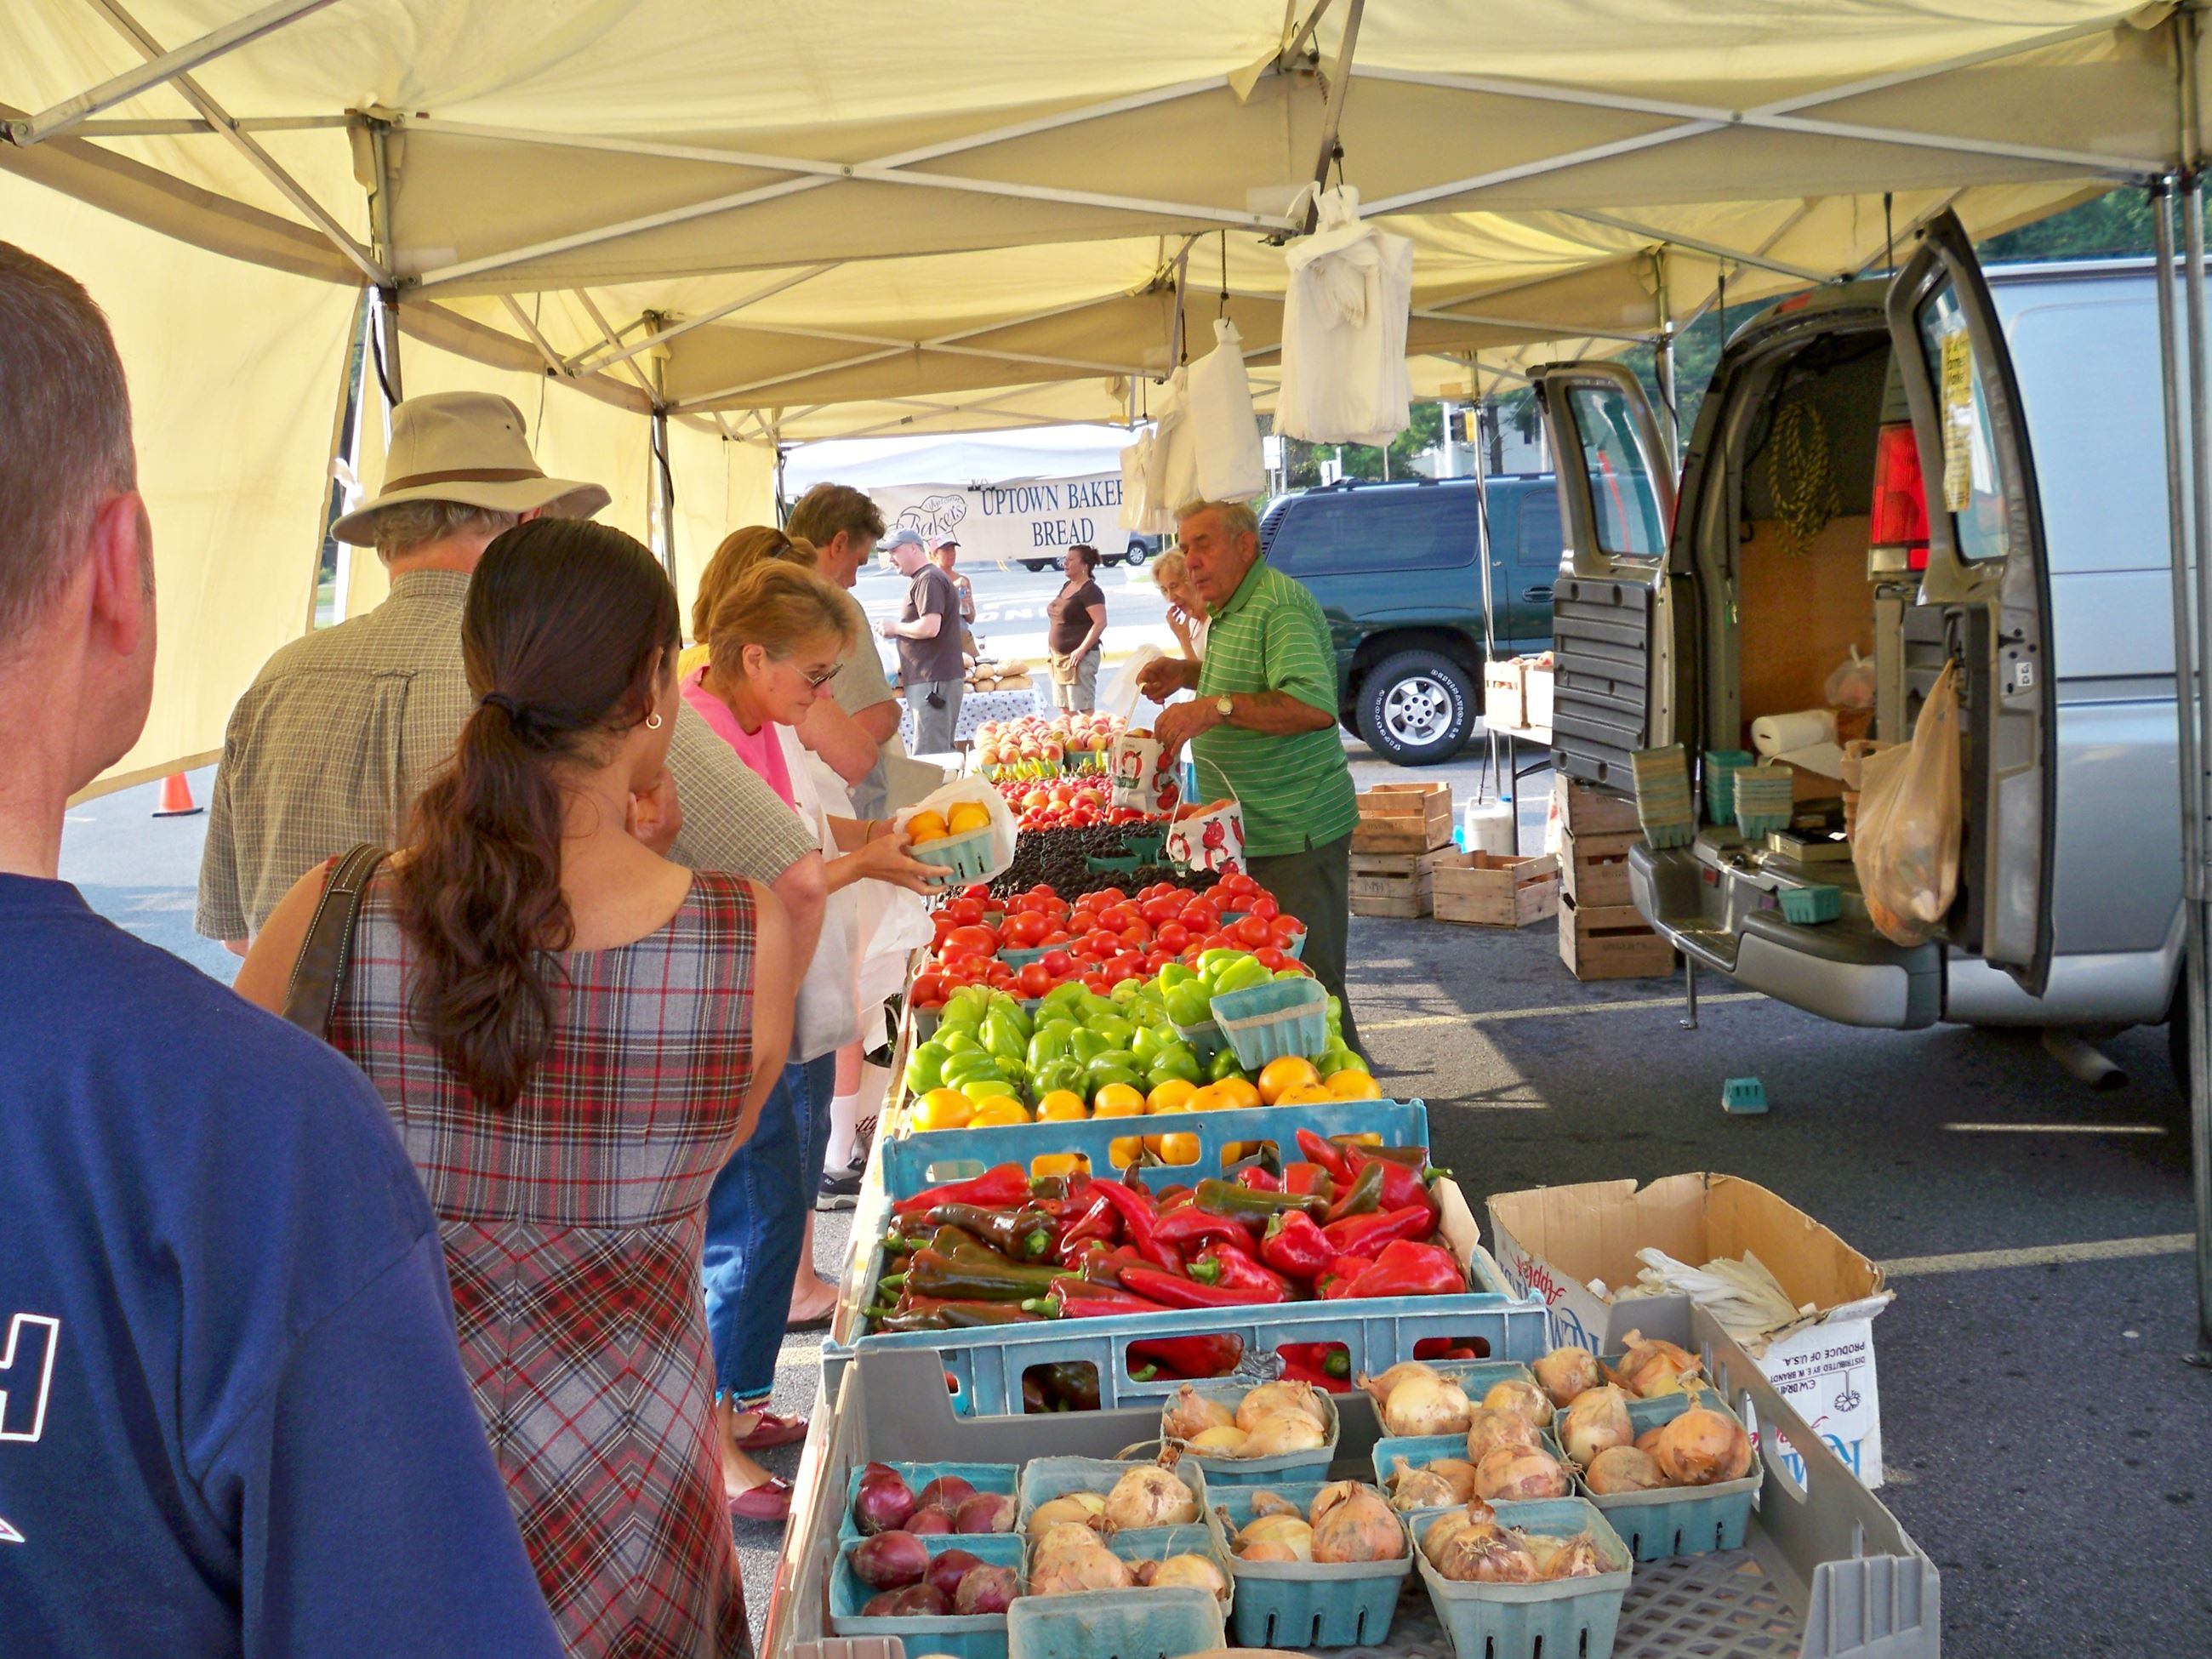 The Bowie Farmers' Market